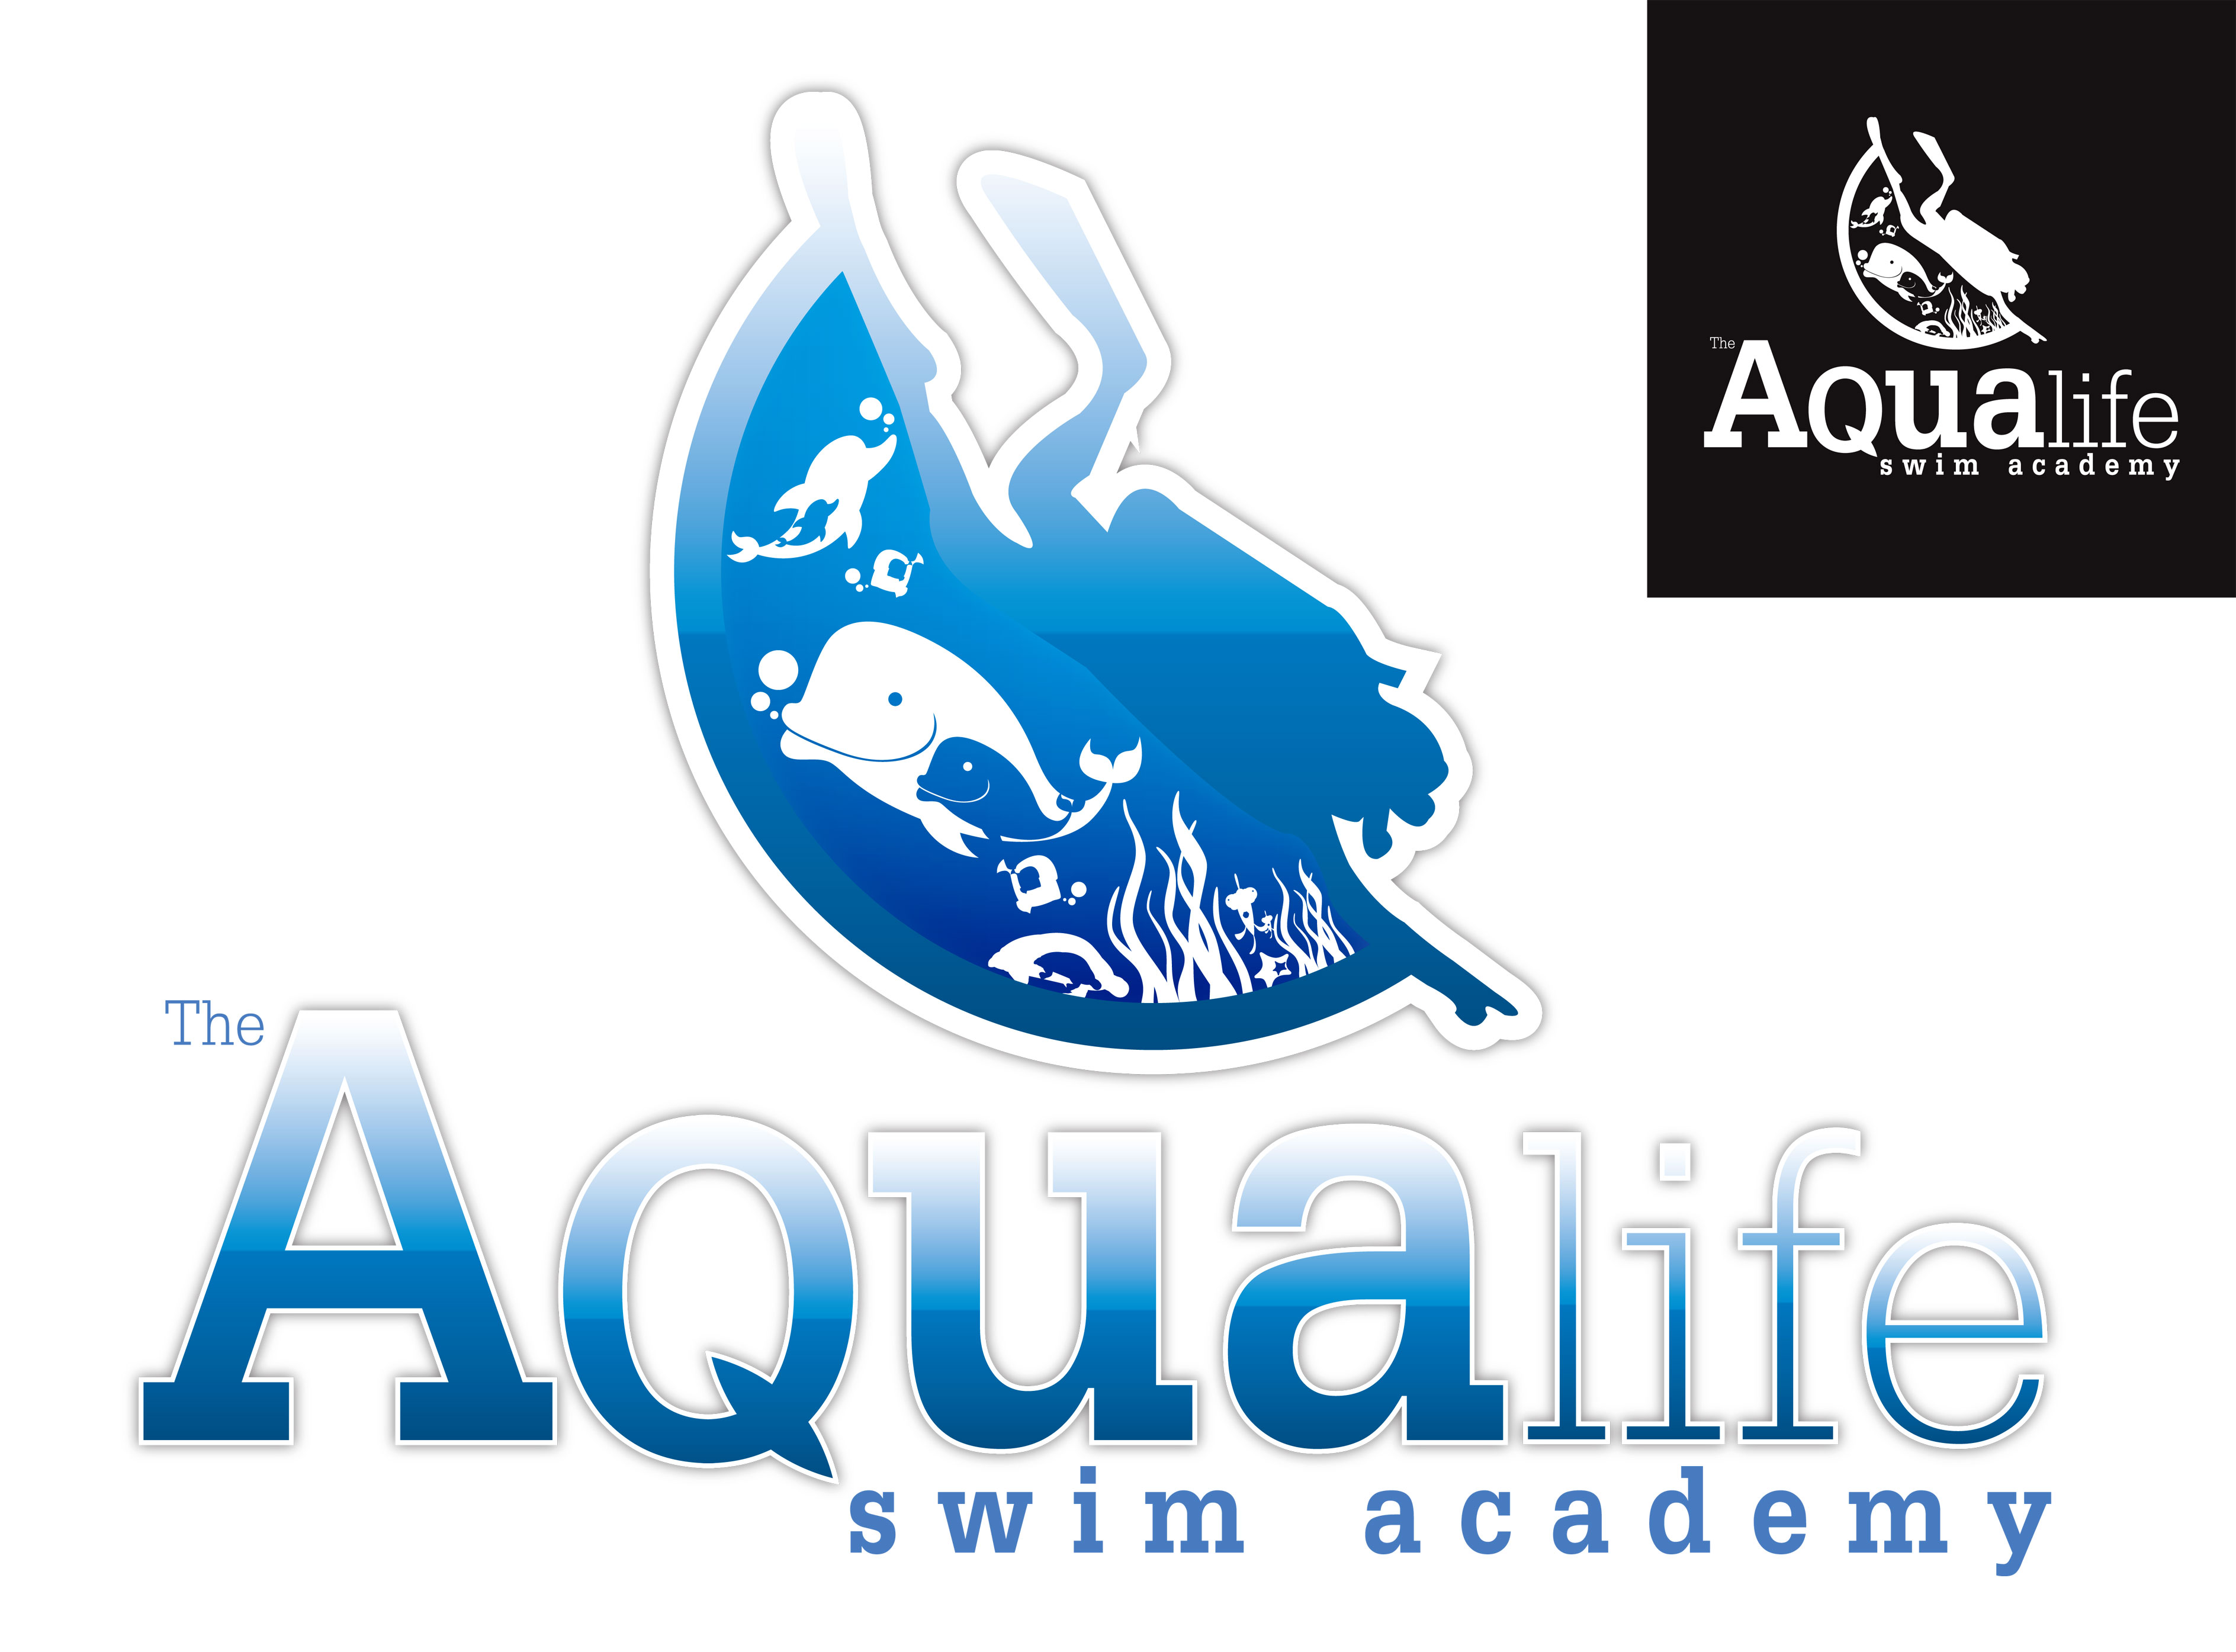 Logo Design by Dit Pambudi - Entry No. 119 in the Logo Design Contest Artistic Logo Design Wanted for The Aqua Life Swim Academy.